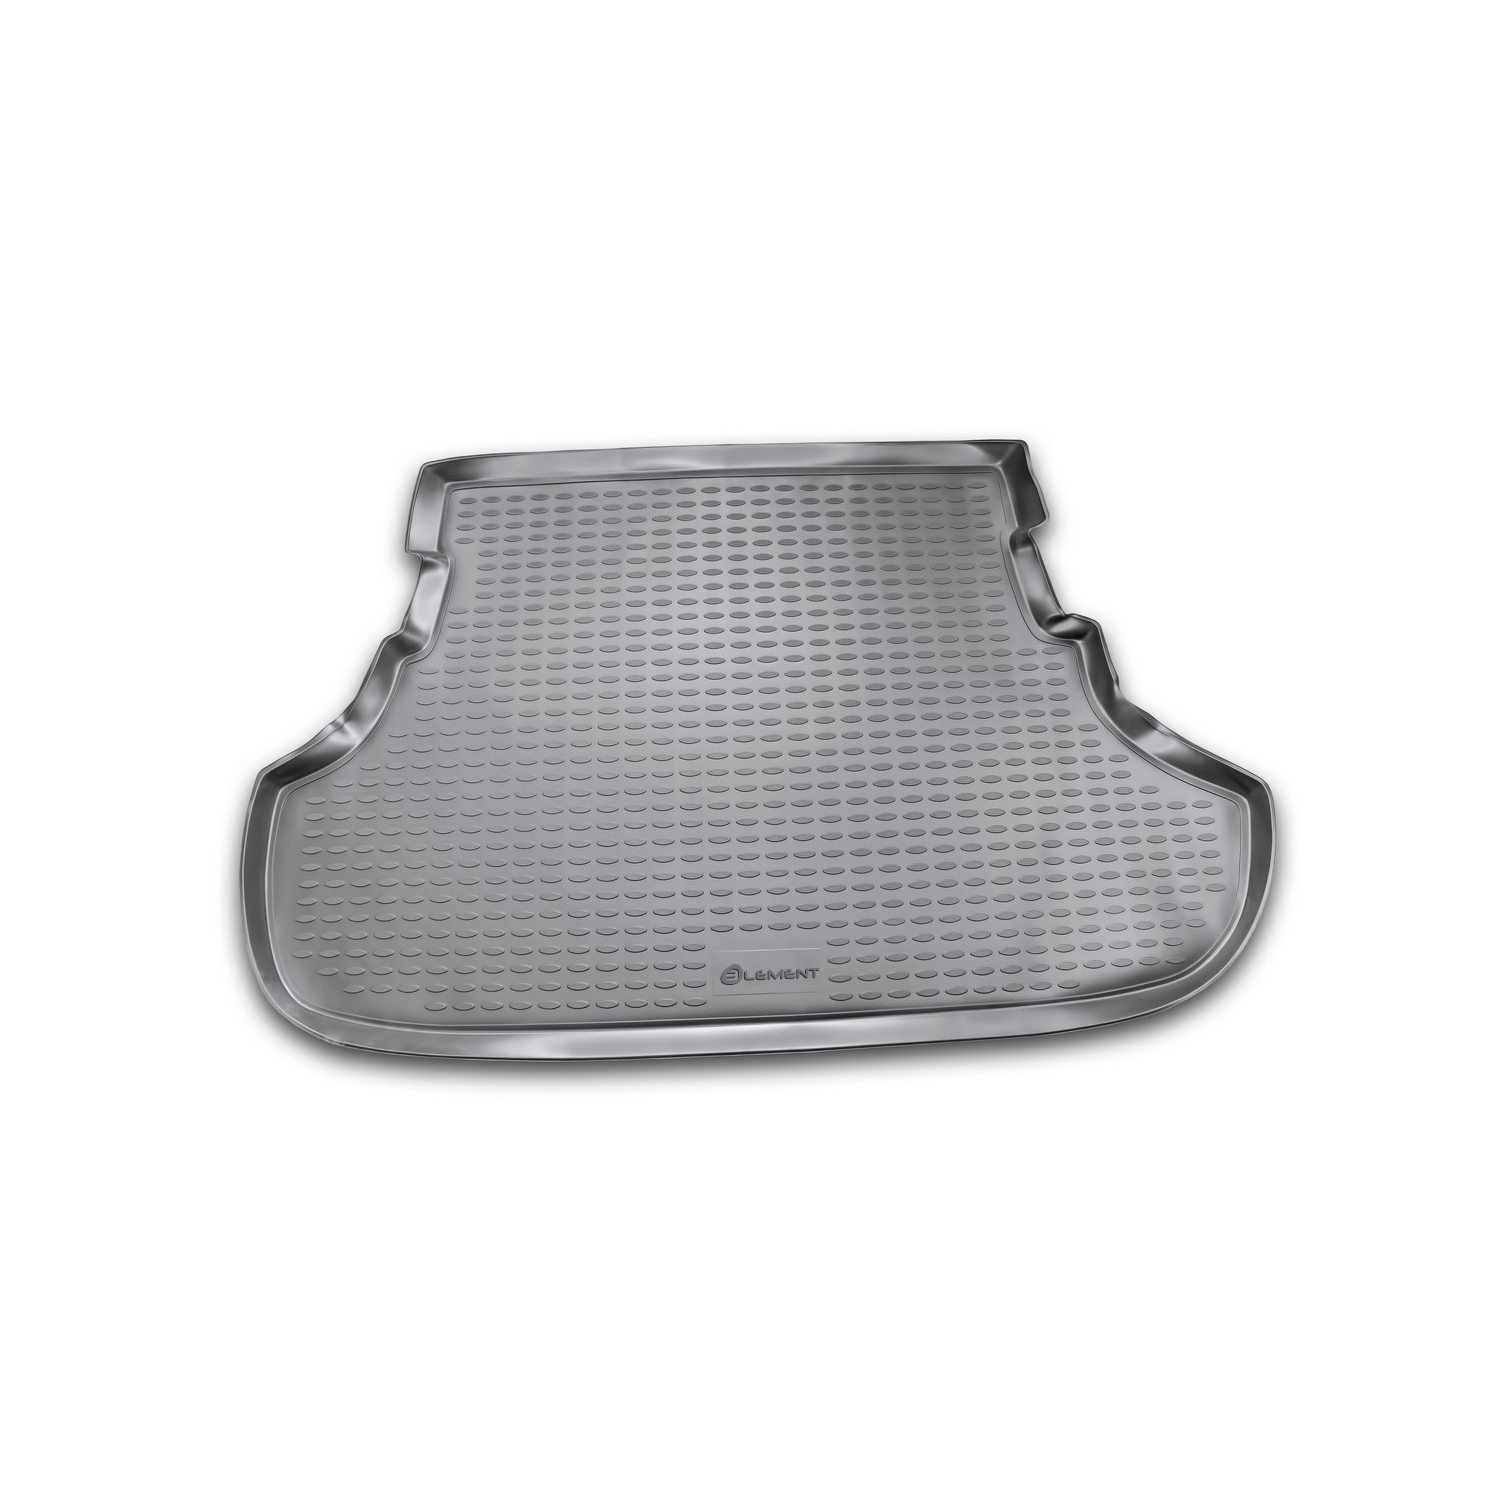 Trunk Mat For MITSUBISHI Lancer X 03/2010, ETS. NLC.35.27.B10